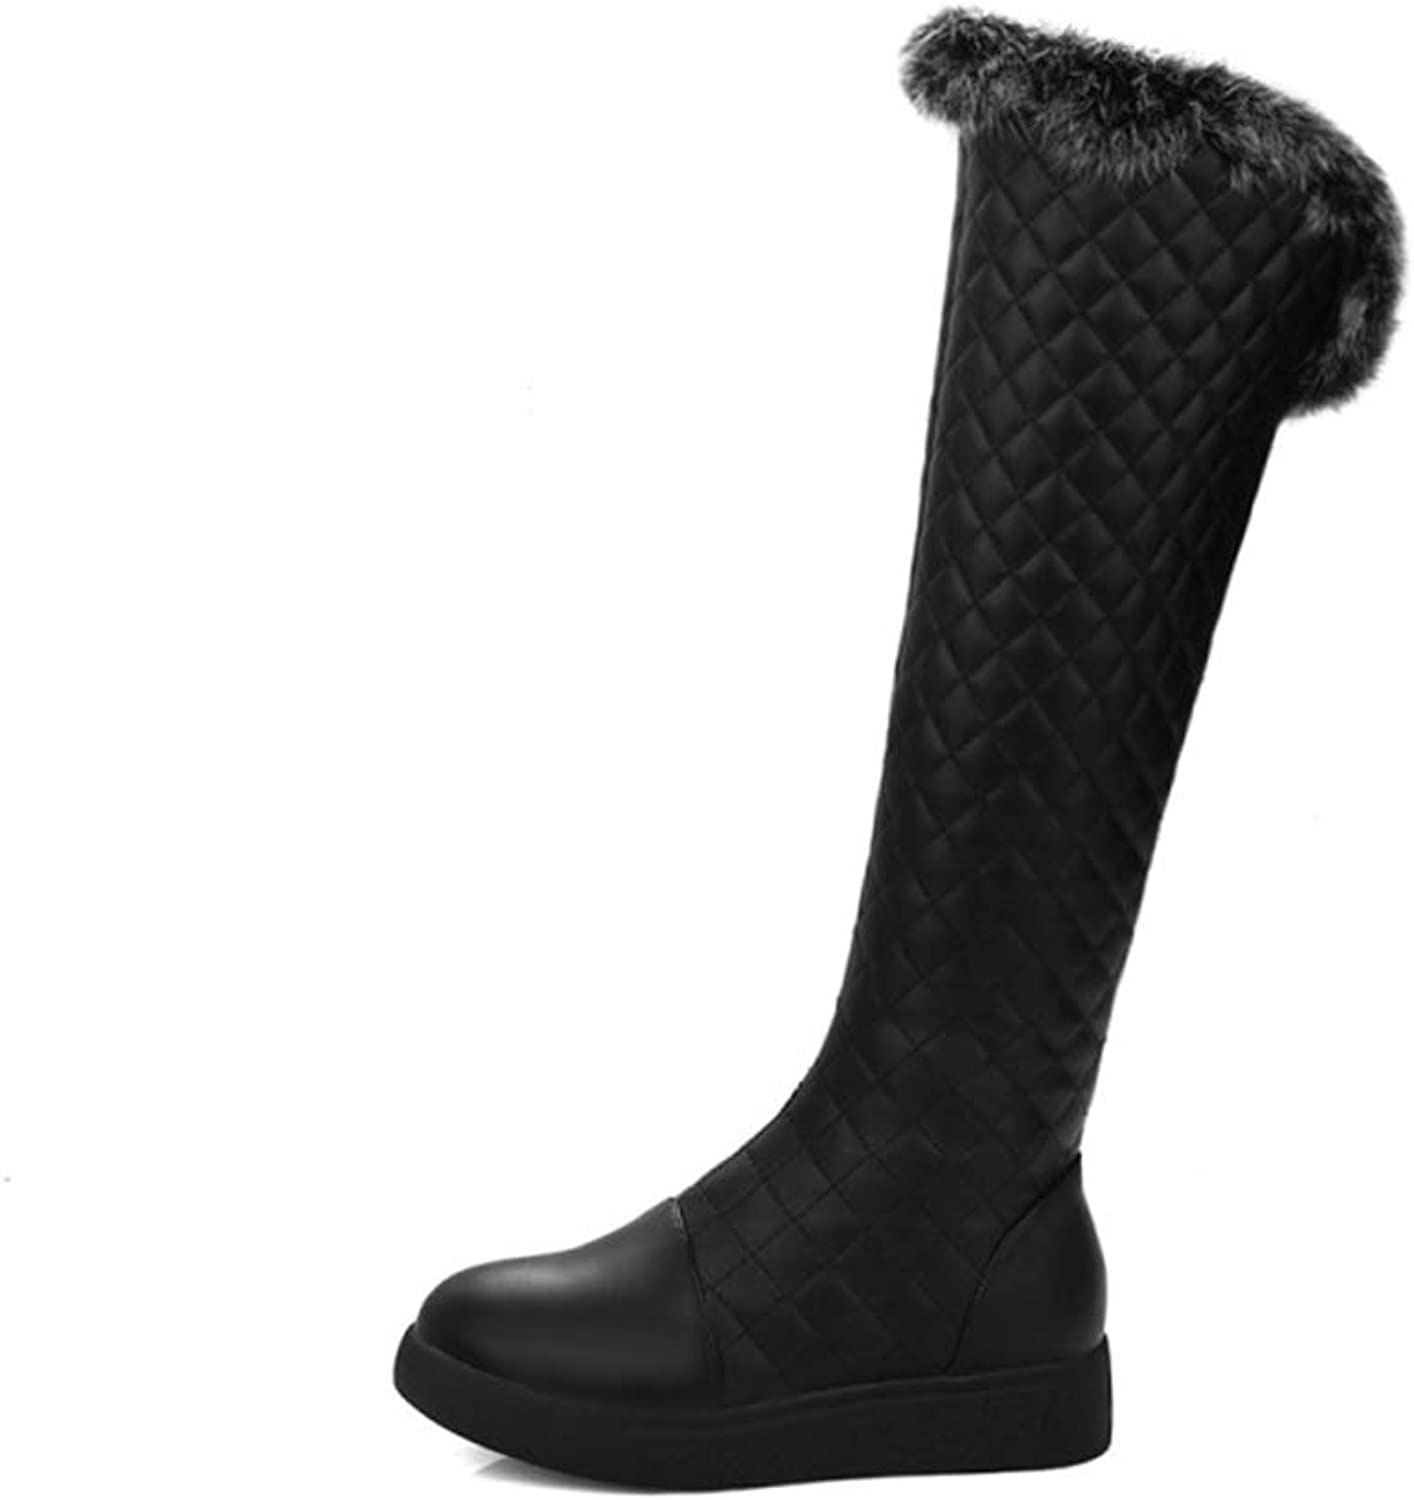 T-JULY Fashion Knee-high Boots for Women Winter Rabbit Fur Warm shoes Girls Flat Platform Long Boots Keep Warm Snow Boots